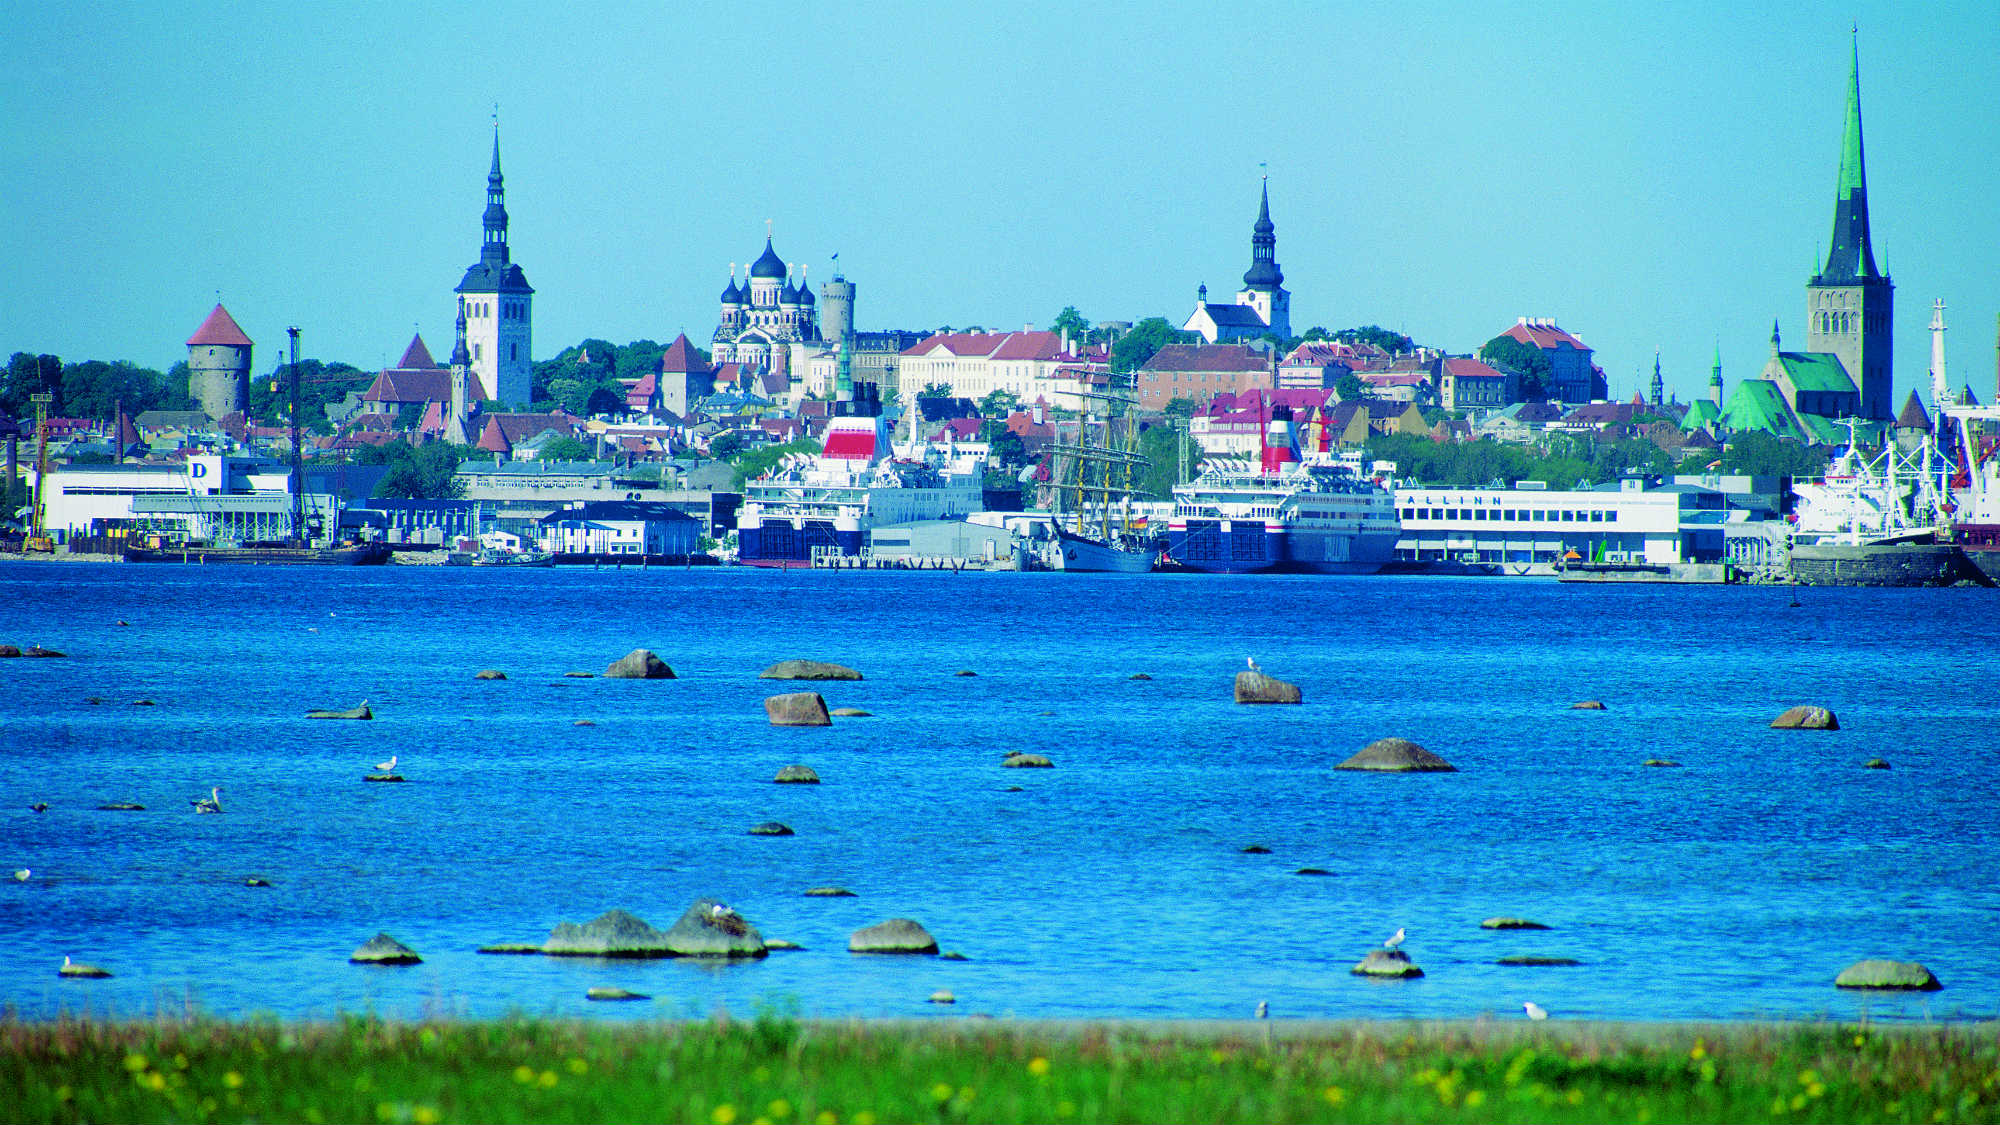 View to the Old Town from the Sea. Tallinn, Estonia. Picture by Toomas Volmer